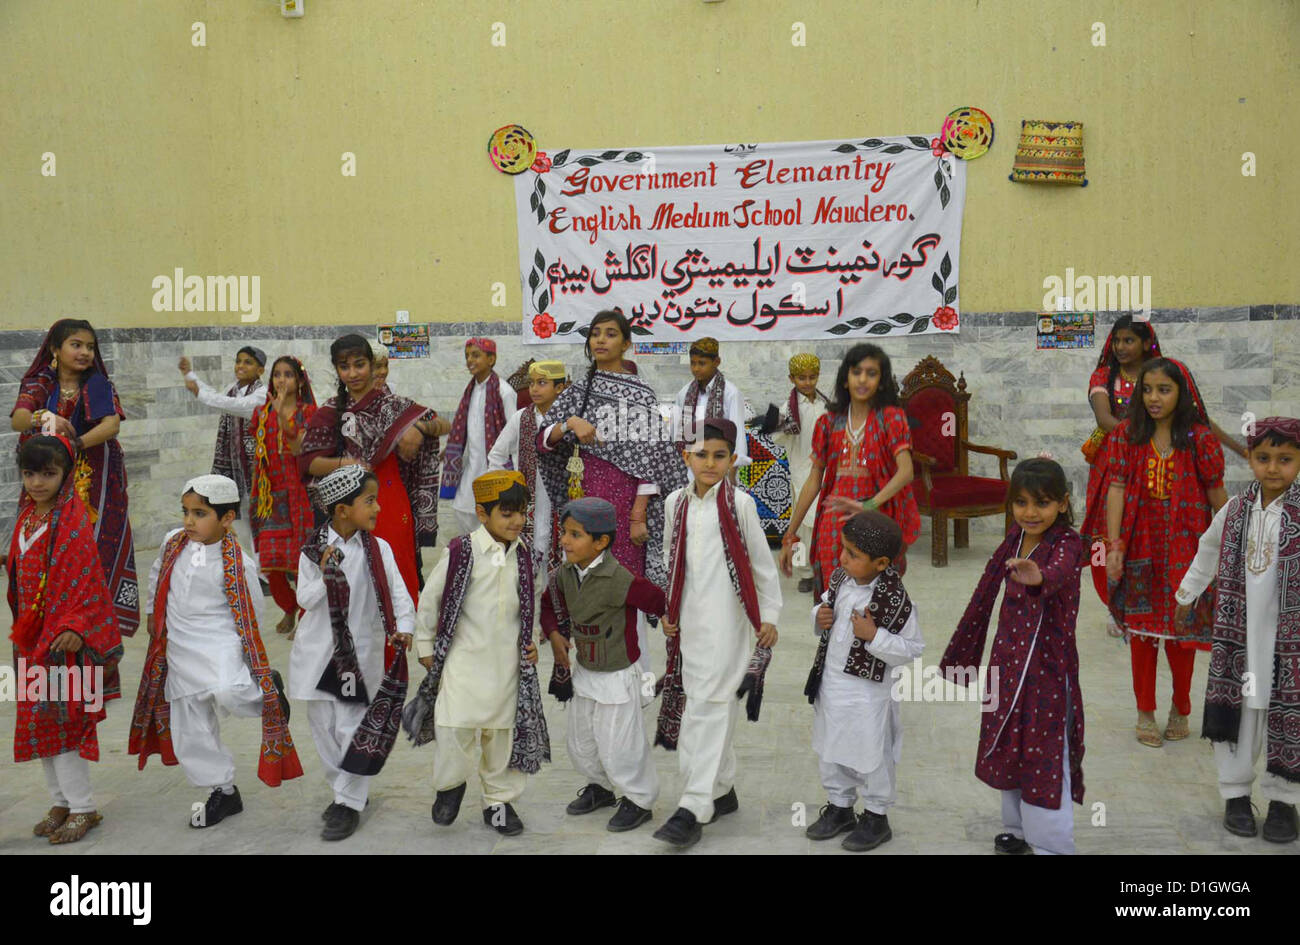 Students in traditional dresses are performing tableau on